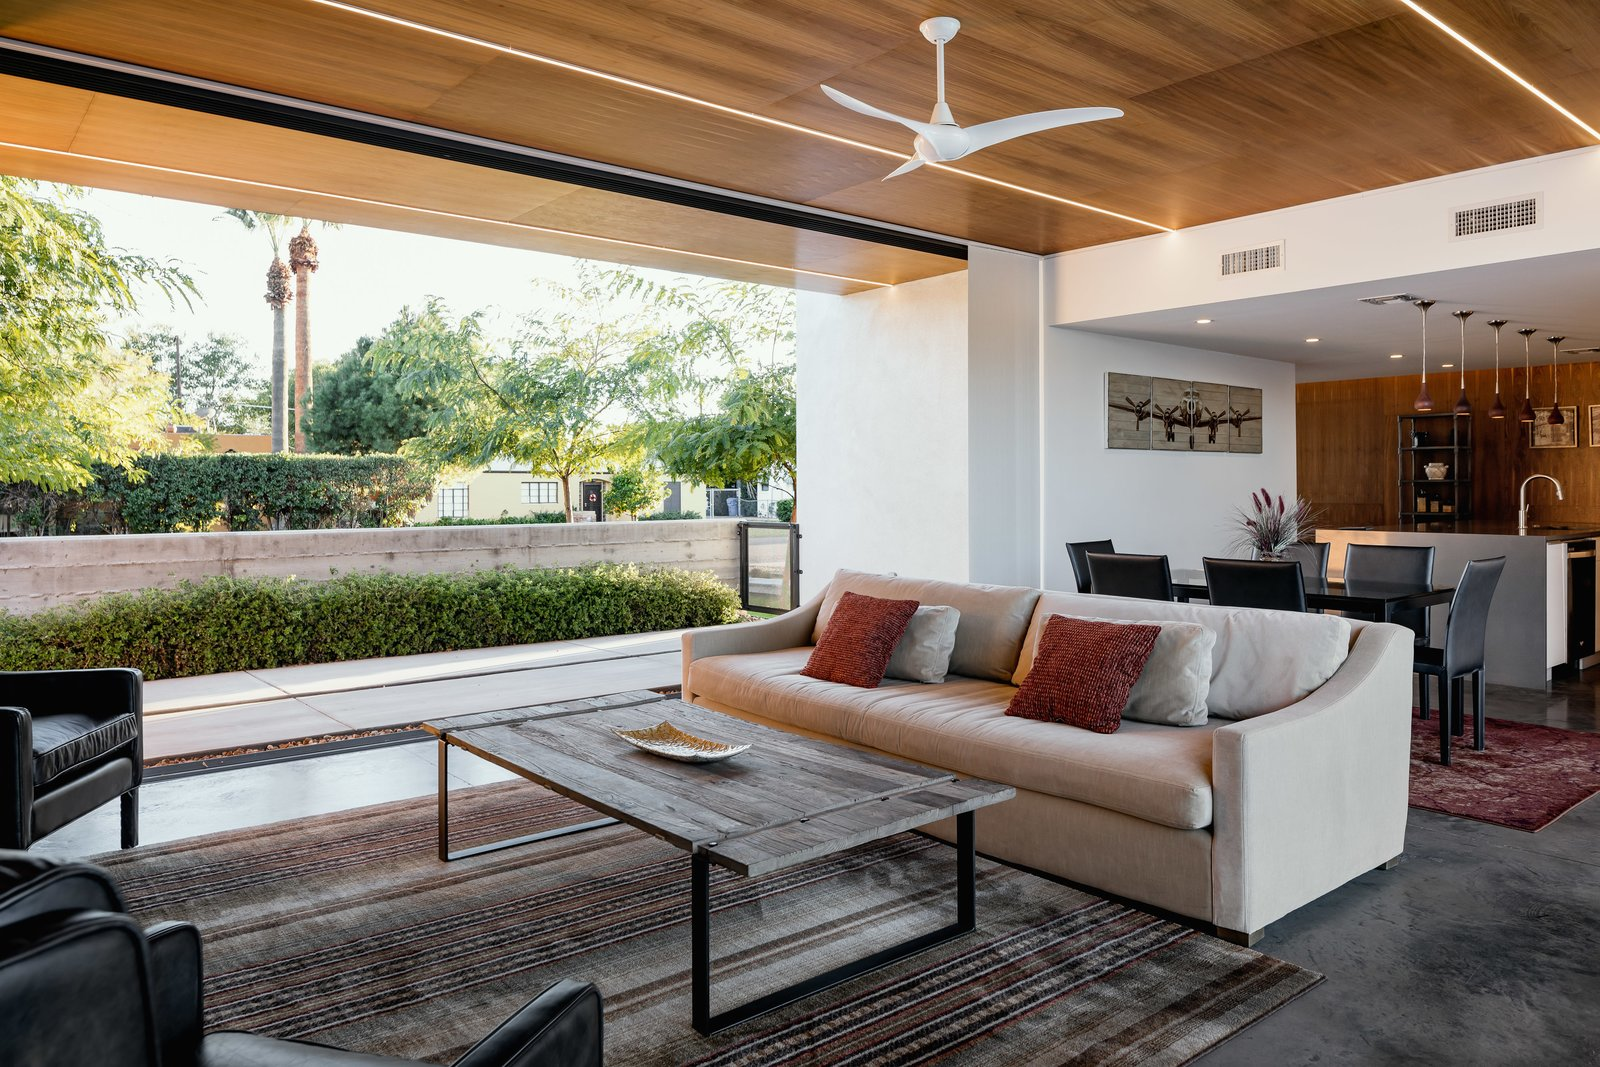 The walnut clad ceiling extends over the kitchen to the entry Tagged: Concrete Patio, Porch, Deck, Shrubs, Trees, Living Room, Front Yard, Sofa, Coffee Tables, Ceiling Lighting, and Concrete Floor.  Link House by The Ranch Mine